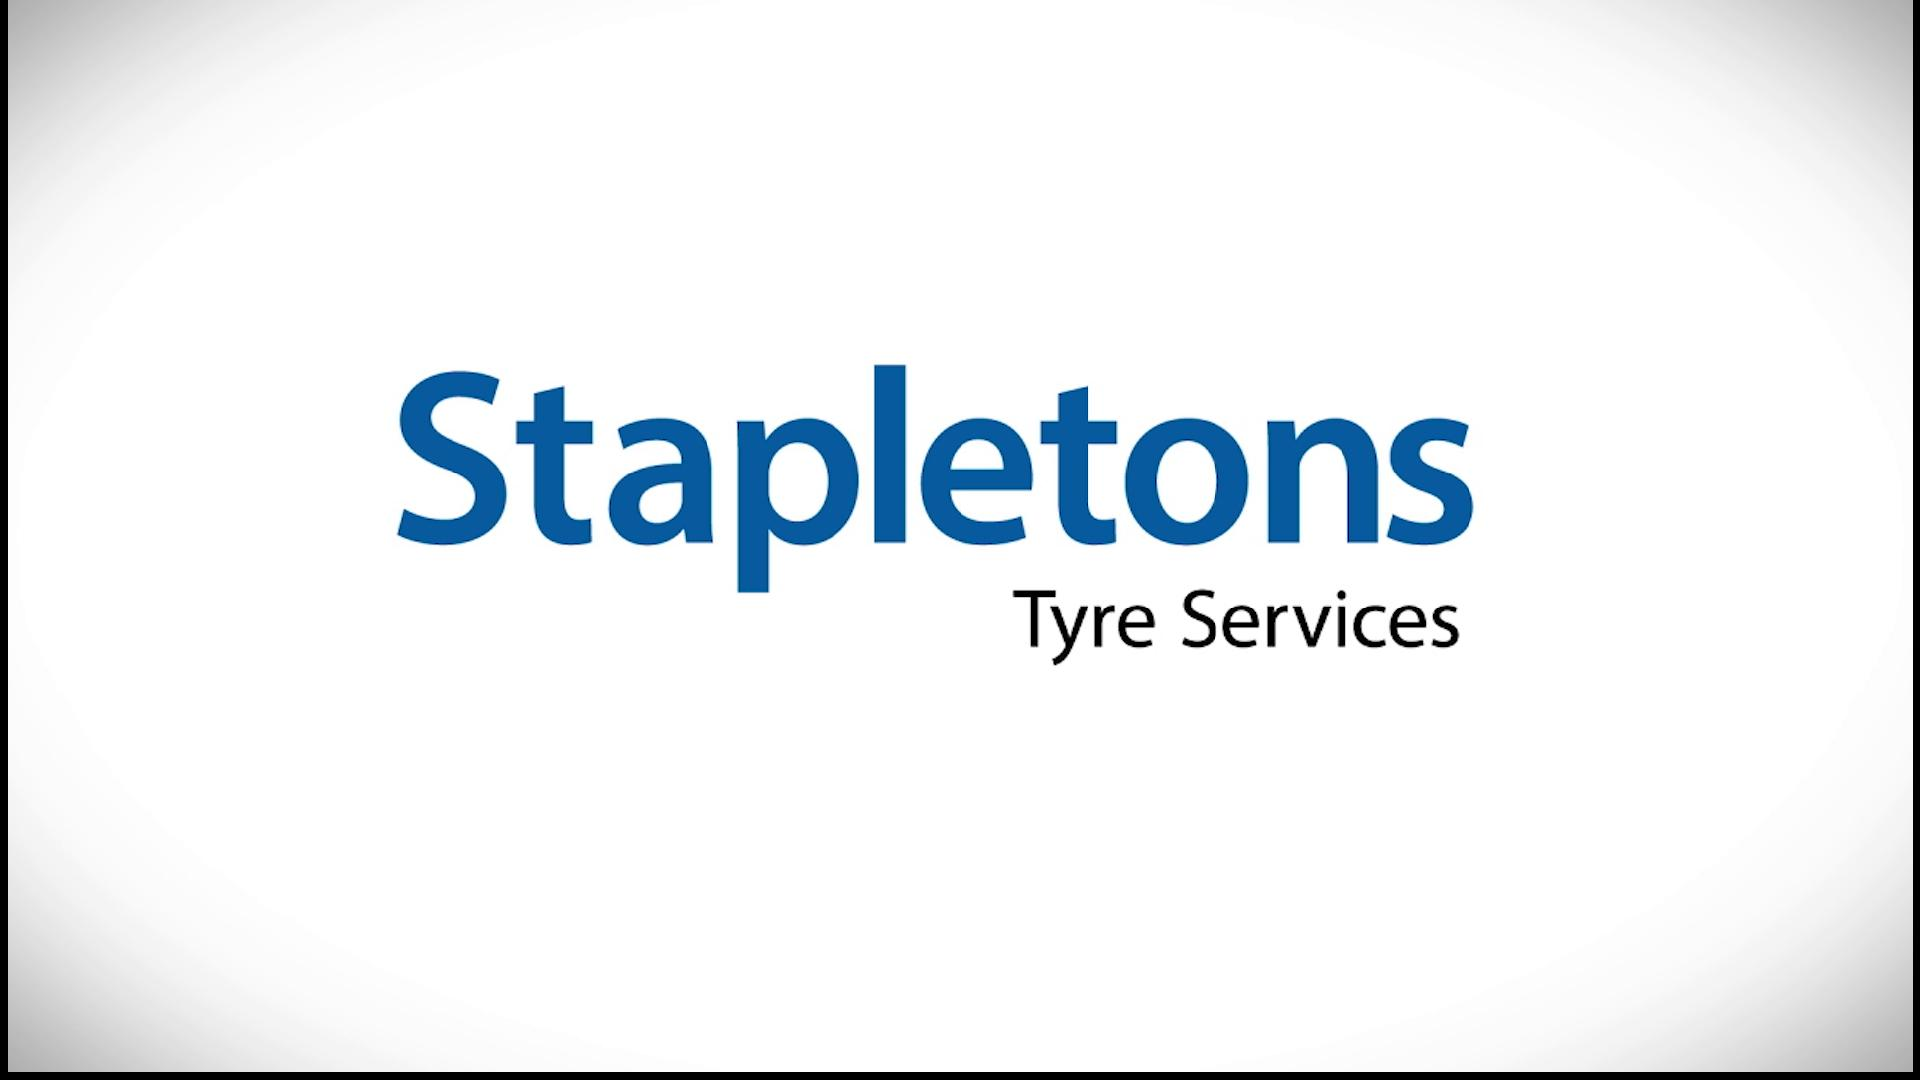 stapletons-intro-2